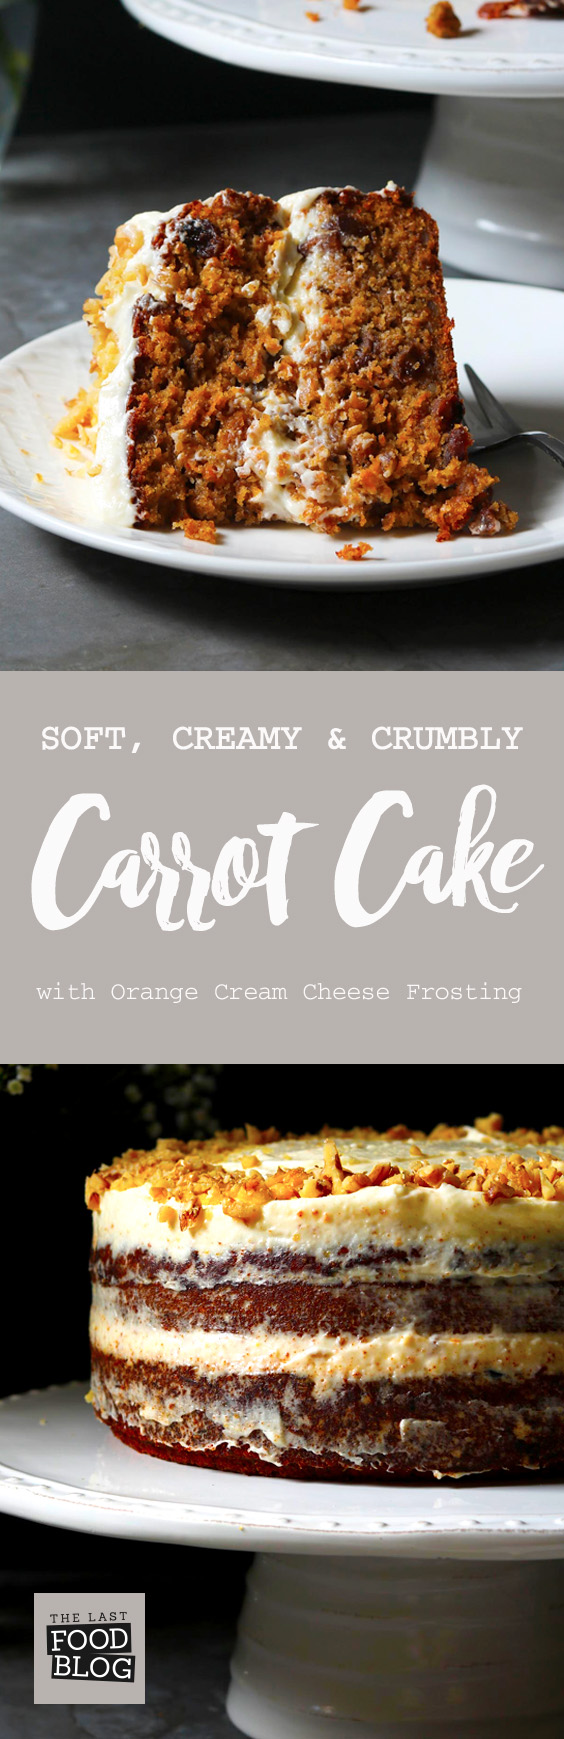 Carrot Cake with Orange Cream Cheese Frosting - thelastfoodblog.com